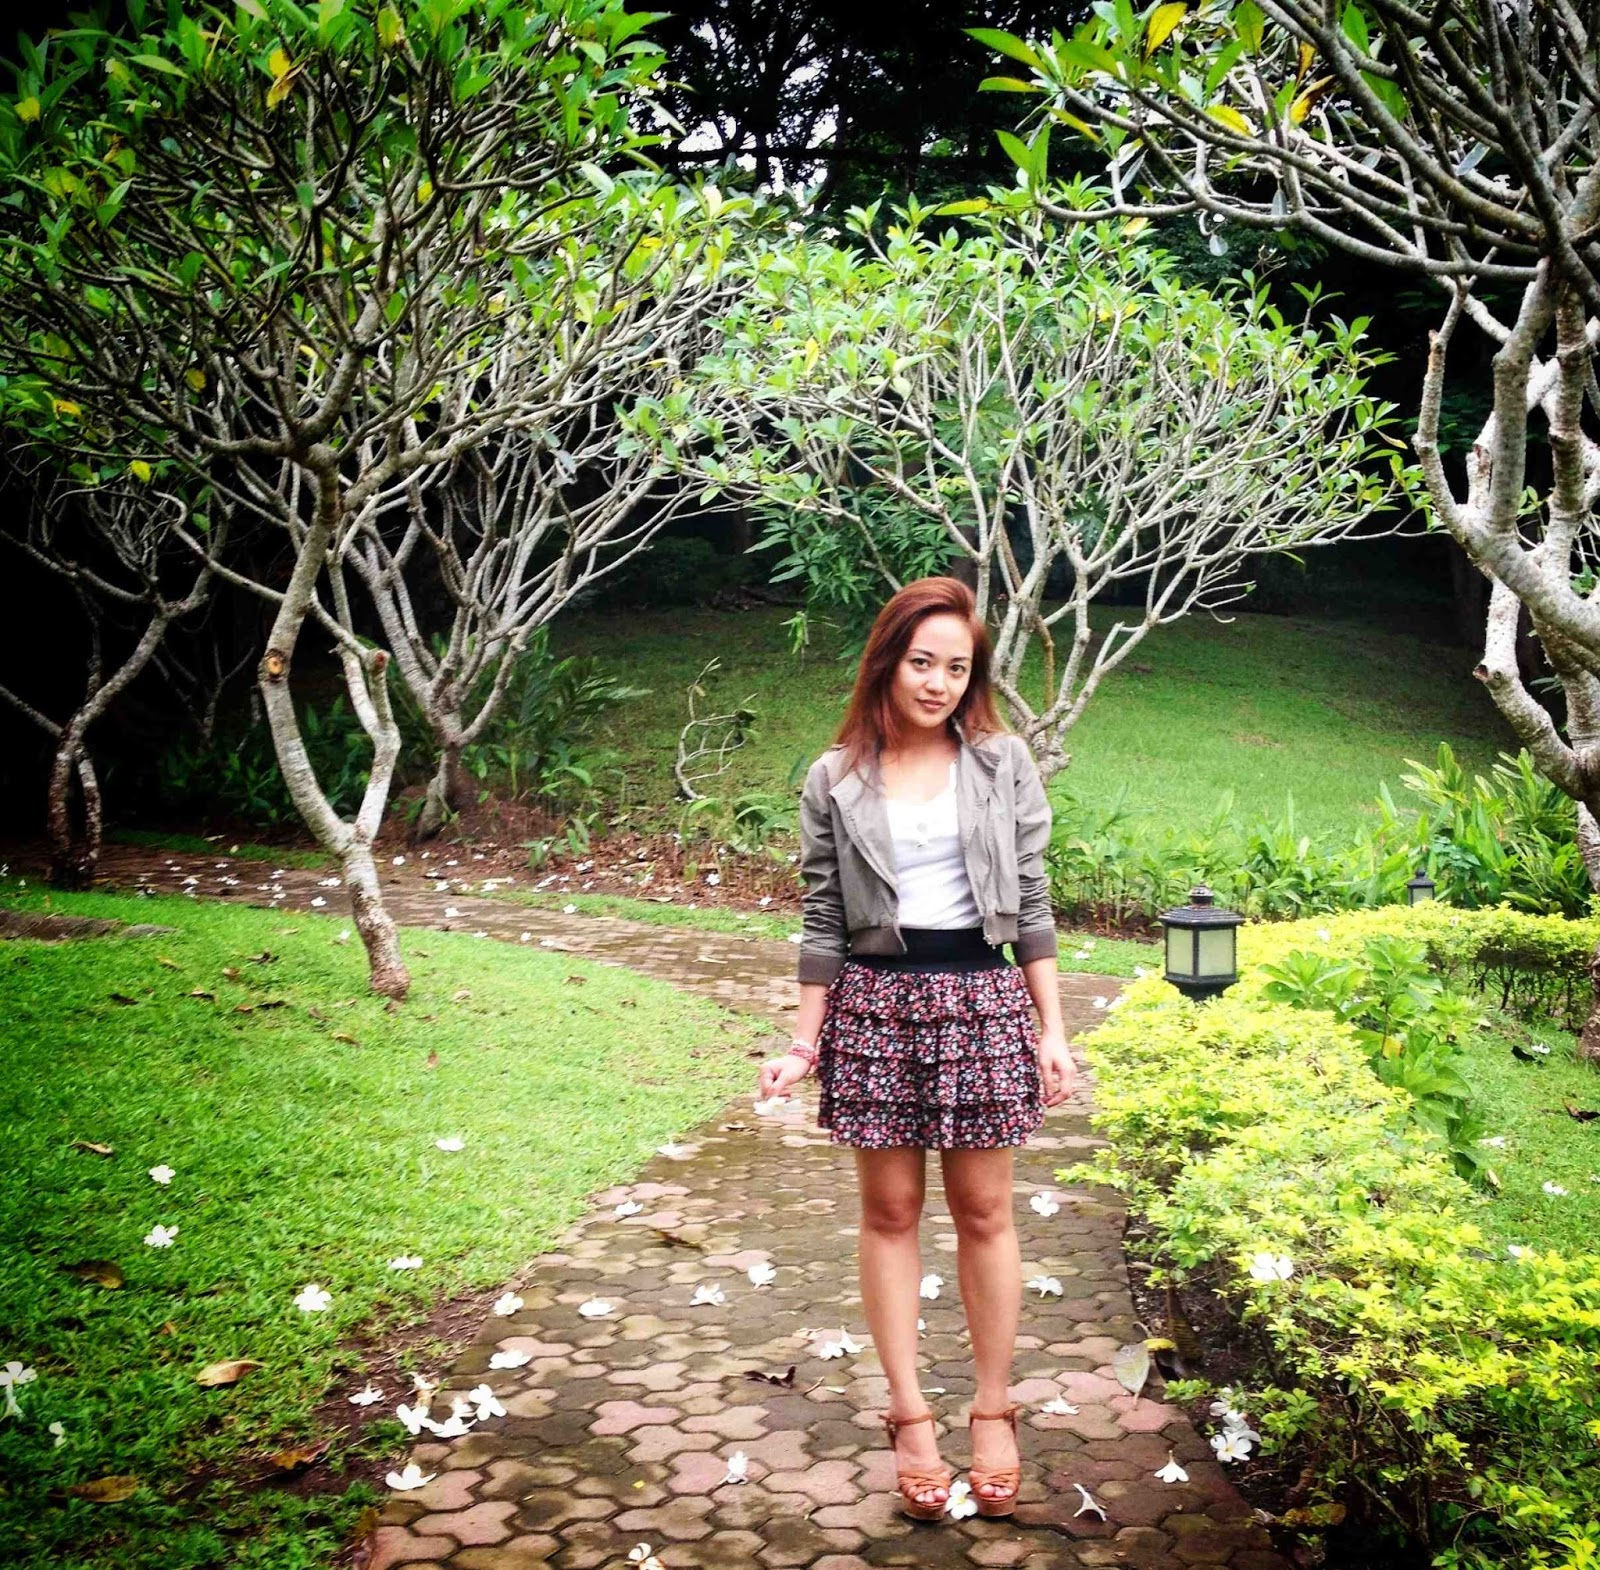 weekend getaway, south of manila, ruffled skirt, summer outfit